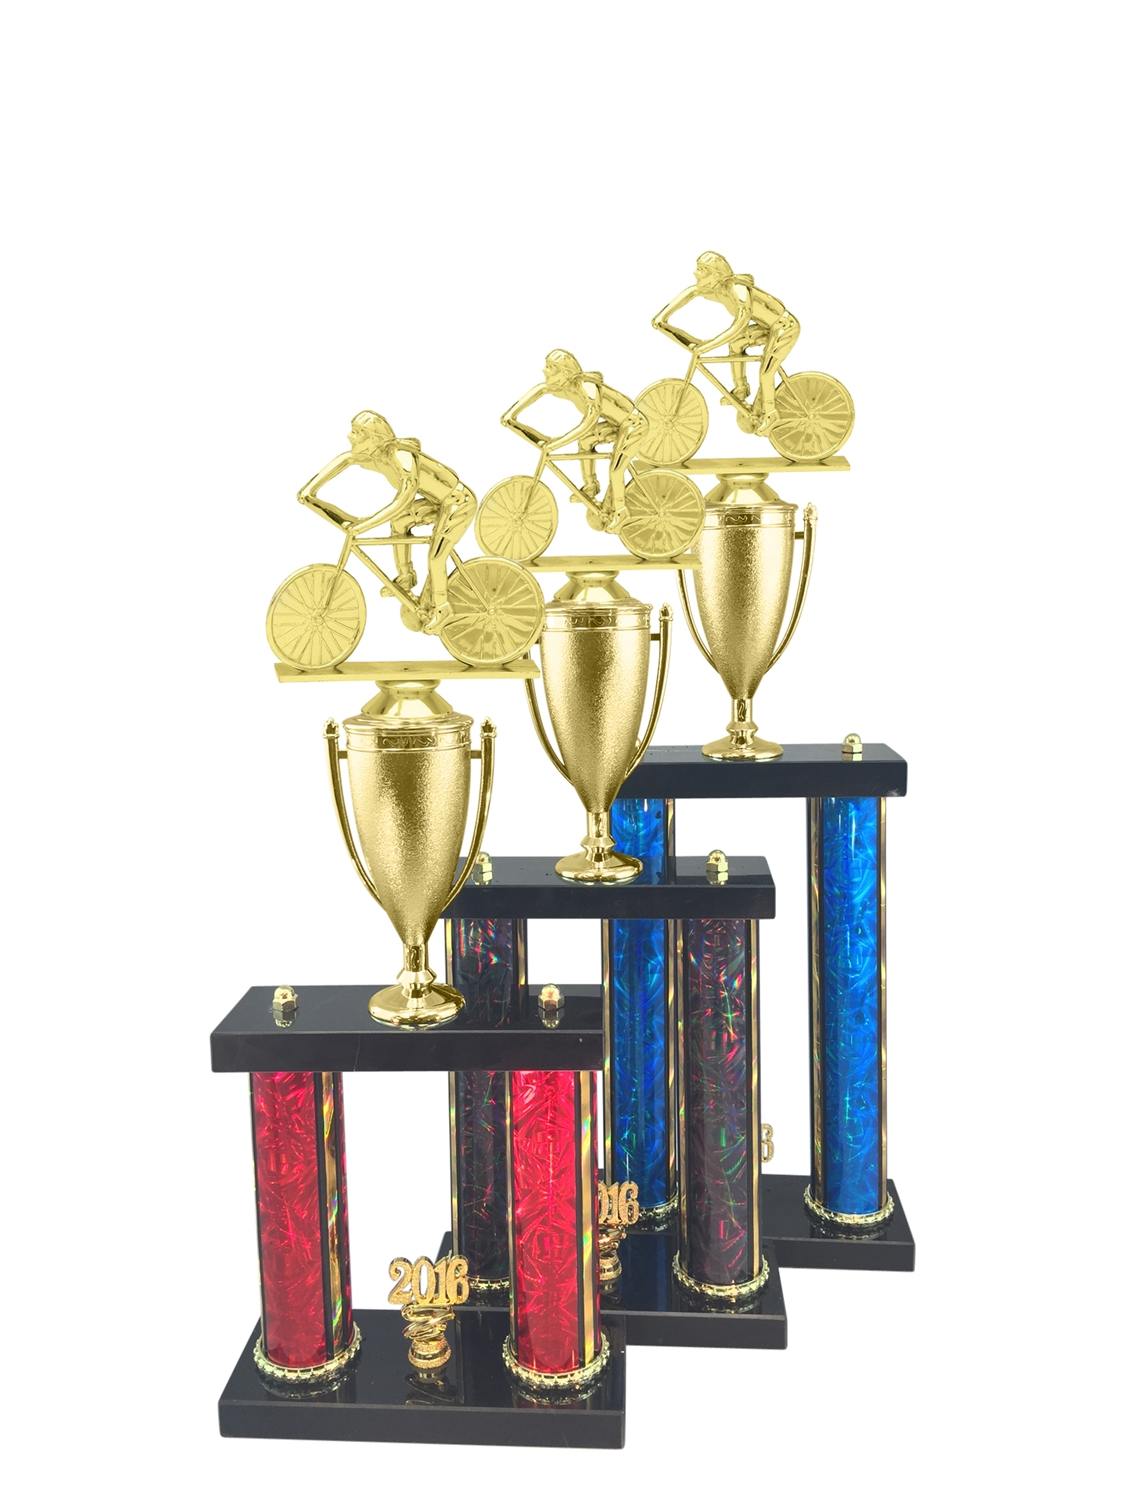 2 Post Female Cycling Trophy in 3 Sizes - in 11 Color & 3 Size Options